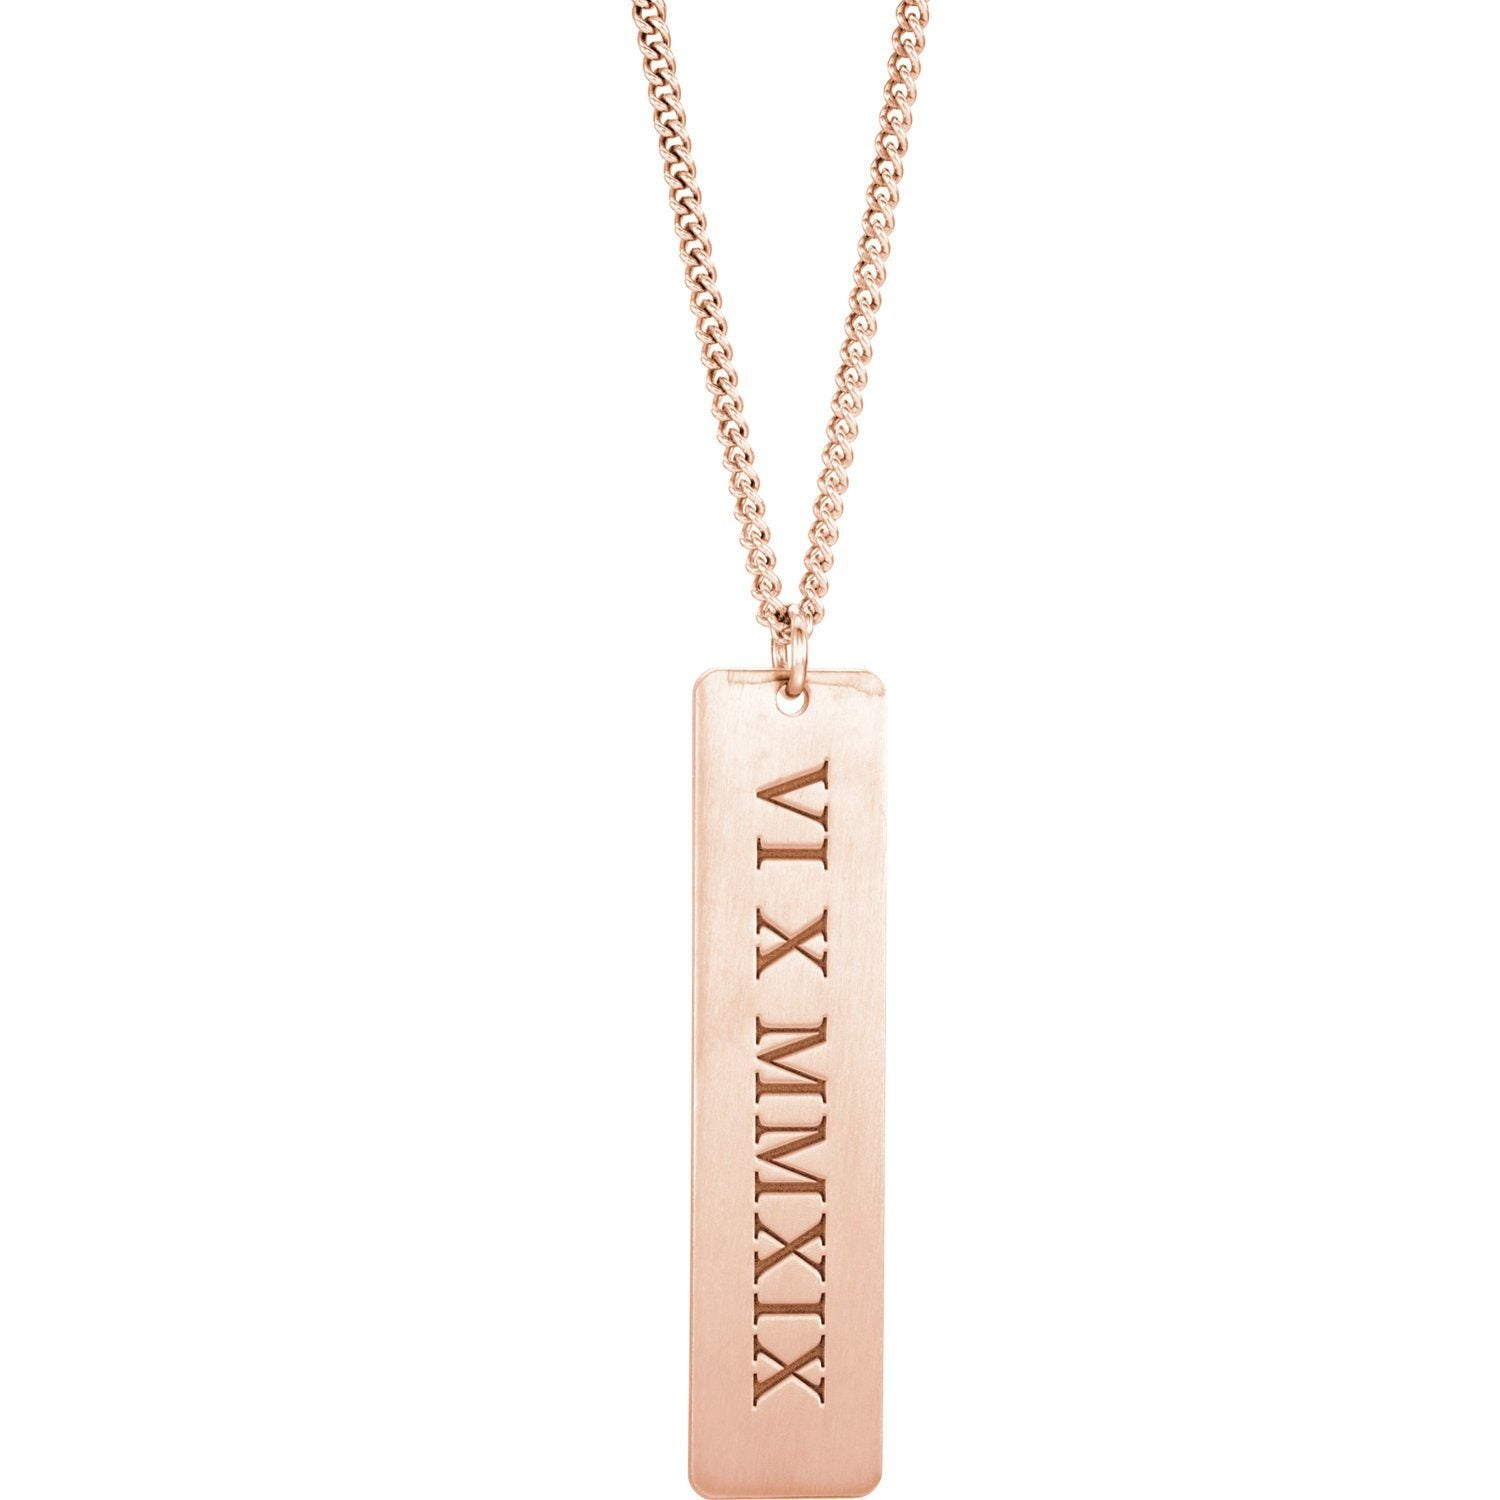 Necklace - Gold-Plated Roman Numeral Dog Tag Necklace